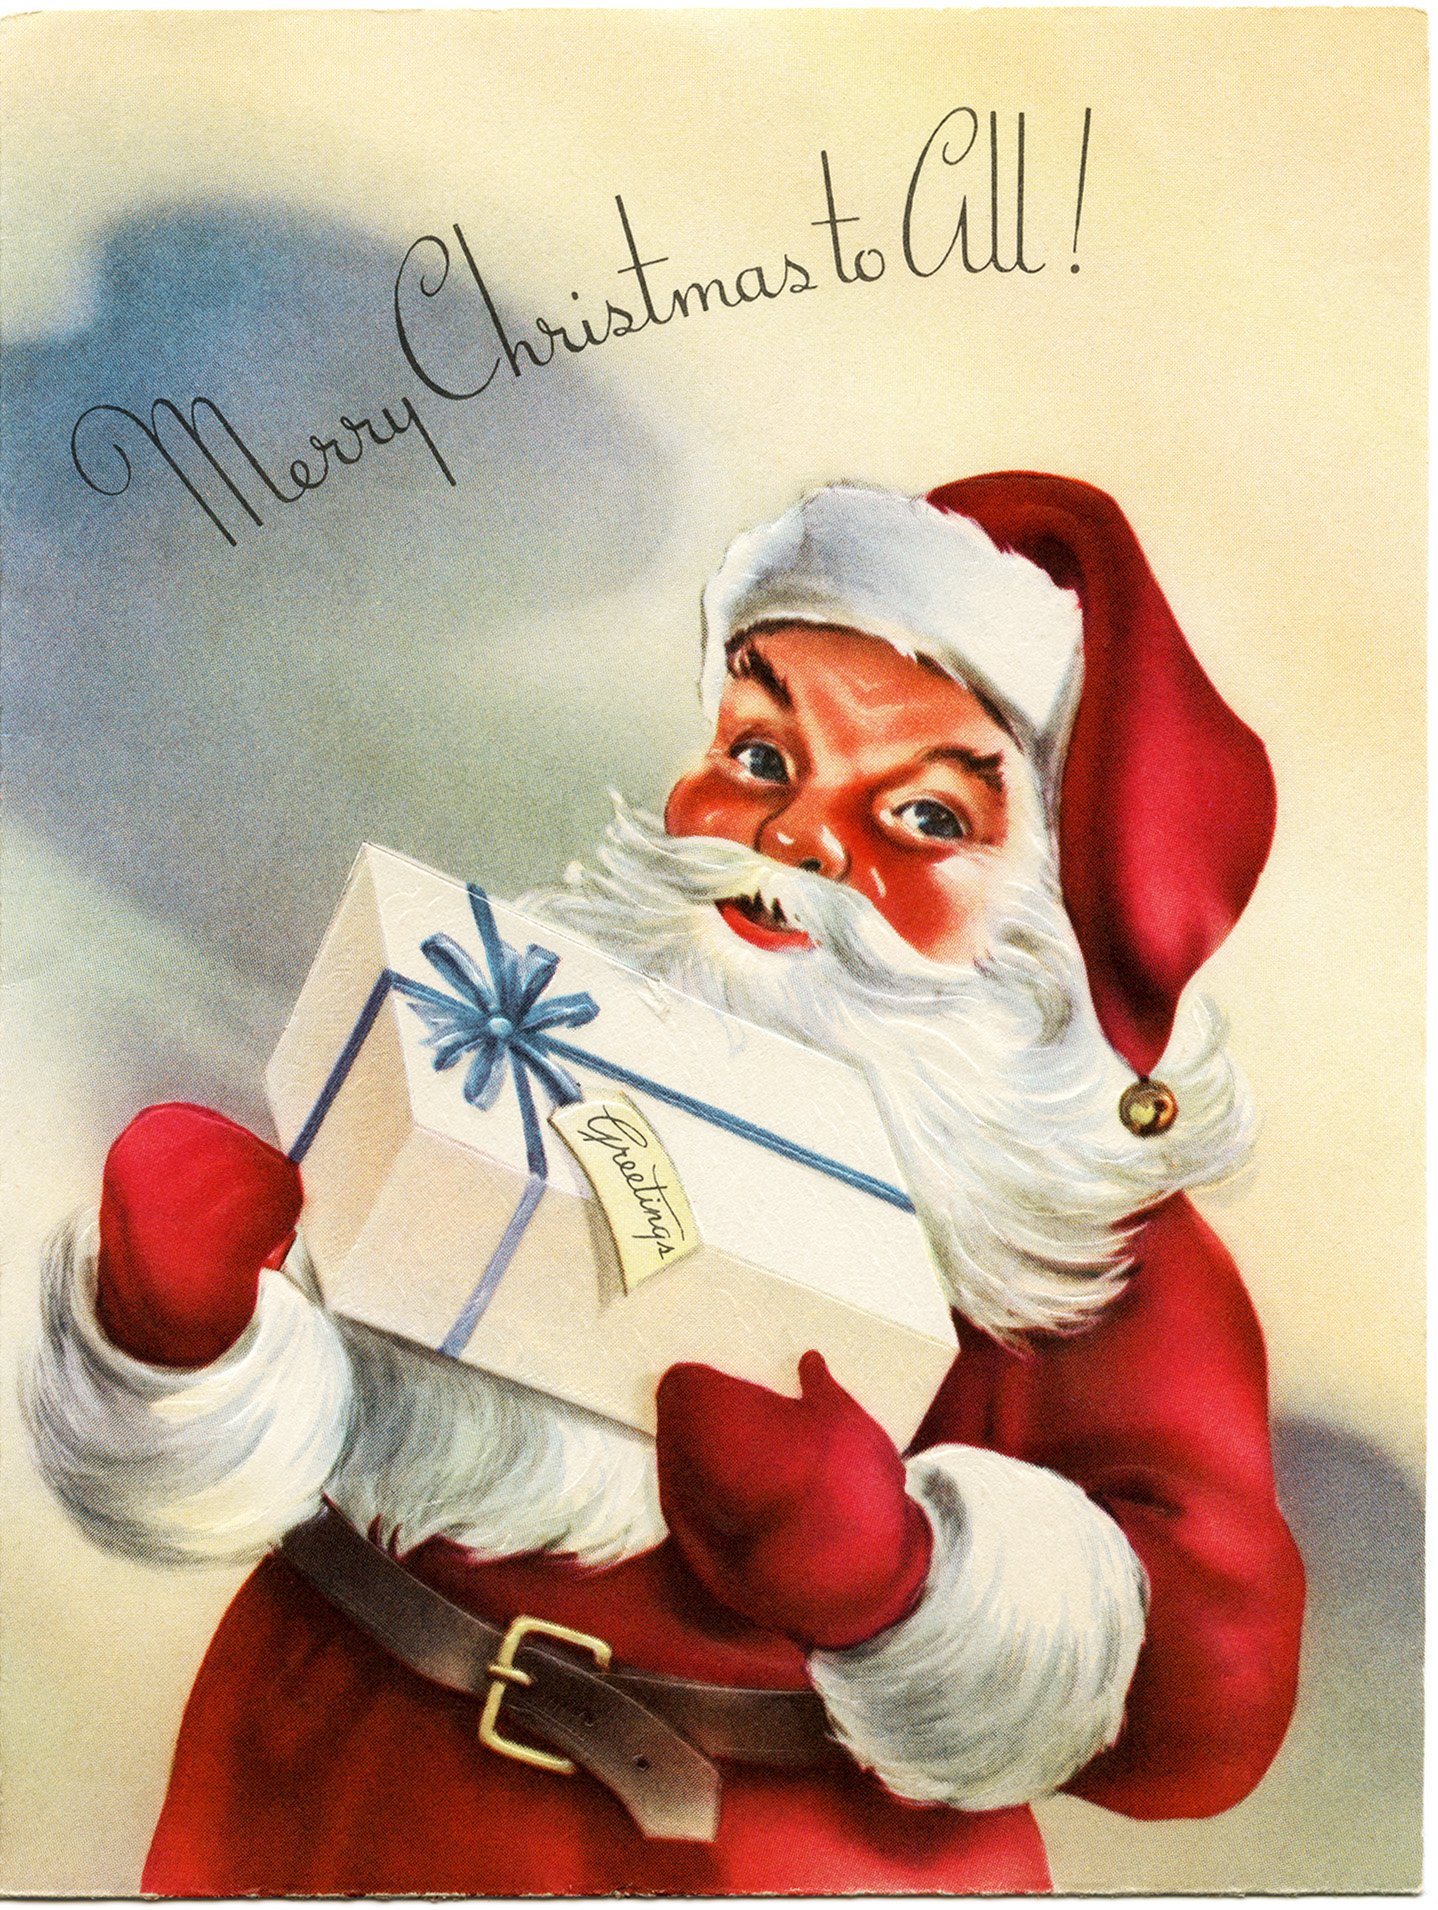 vintage santa clip art, old fashioned christmas card, retro christmas graphic, old fashioned santa printable, santa in sleigh image